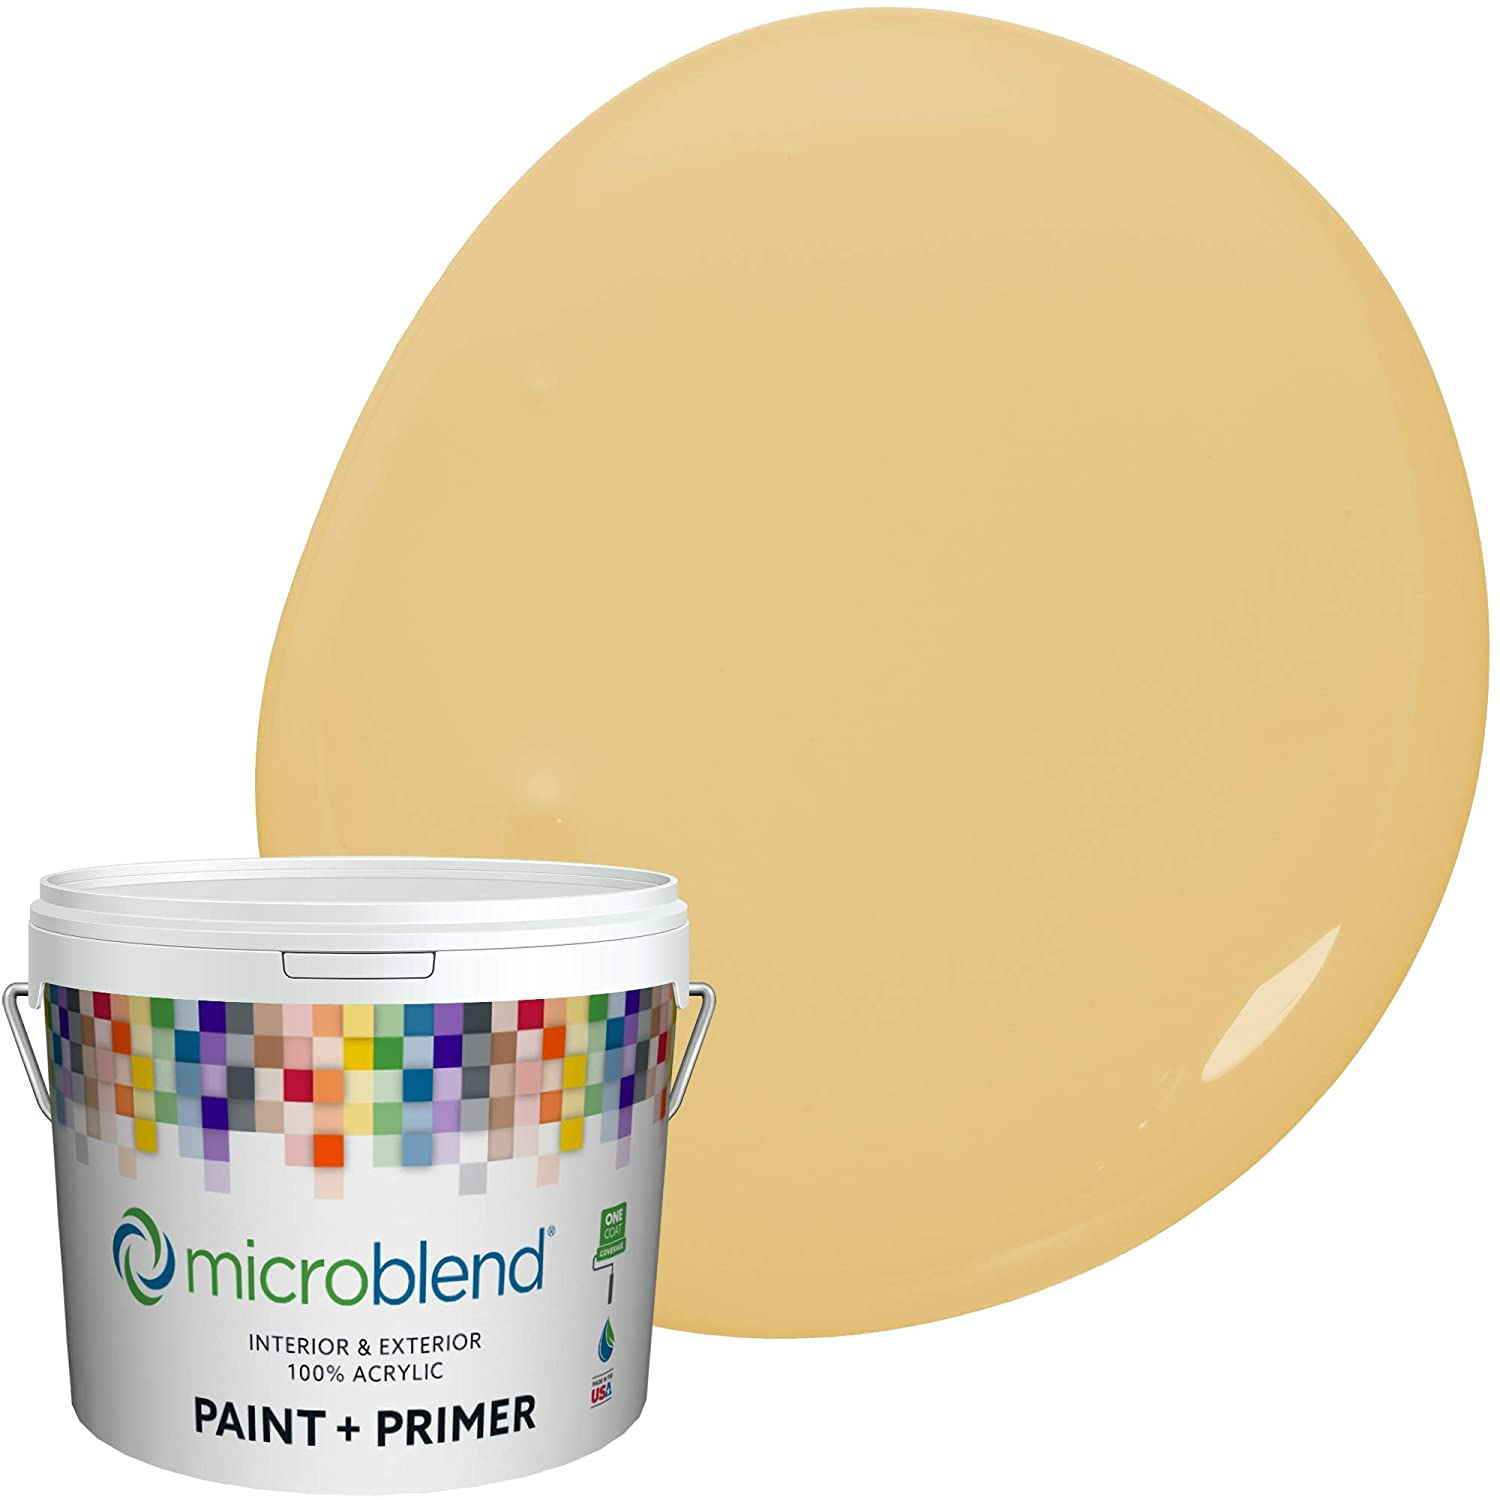 Microblend Exterior Paint and Primer - Yellow/Tuscon Gold, Semi-Gloss Sheen, 1-Gallon, Premium Quality, One Coat Hide, Low VOC, Washable, Microblend Country Collection